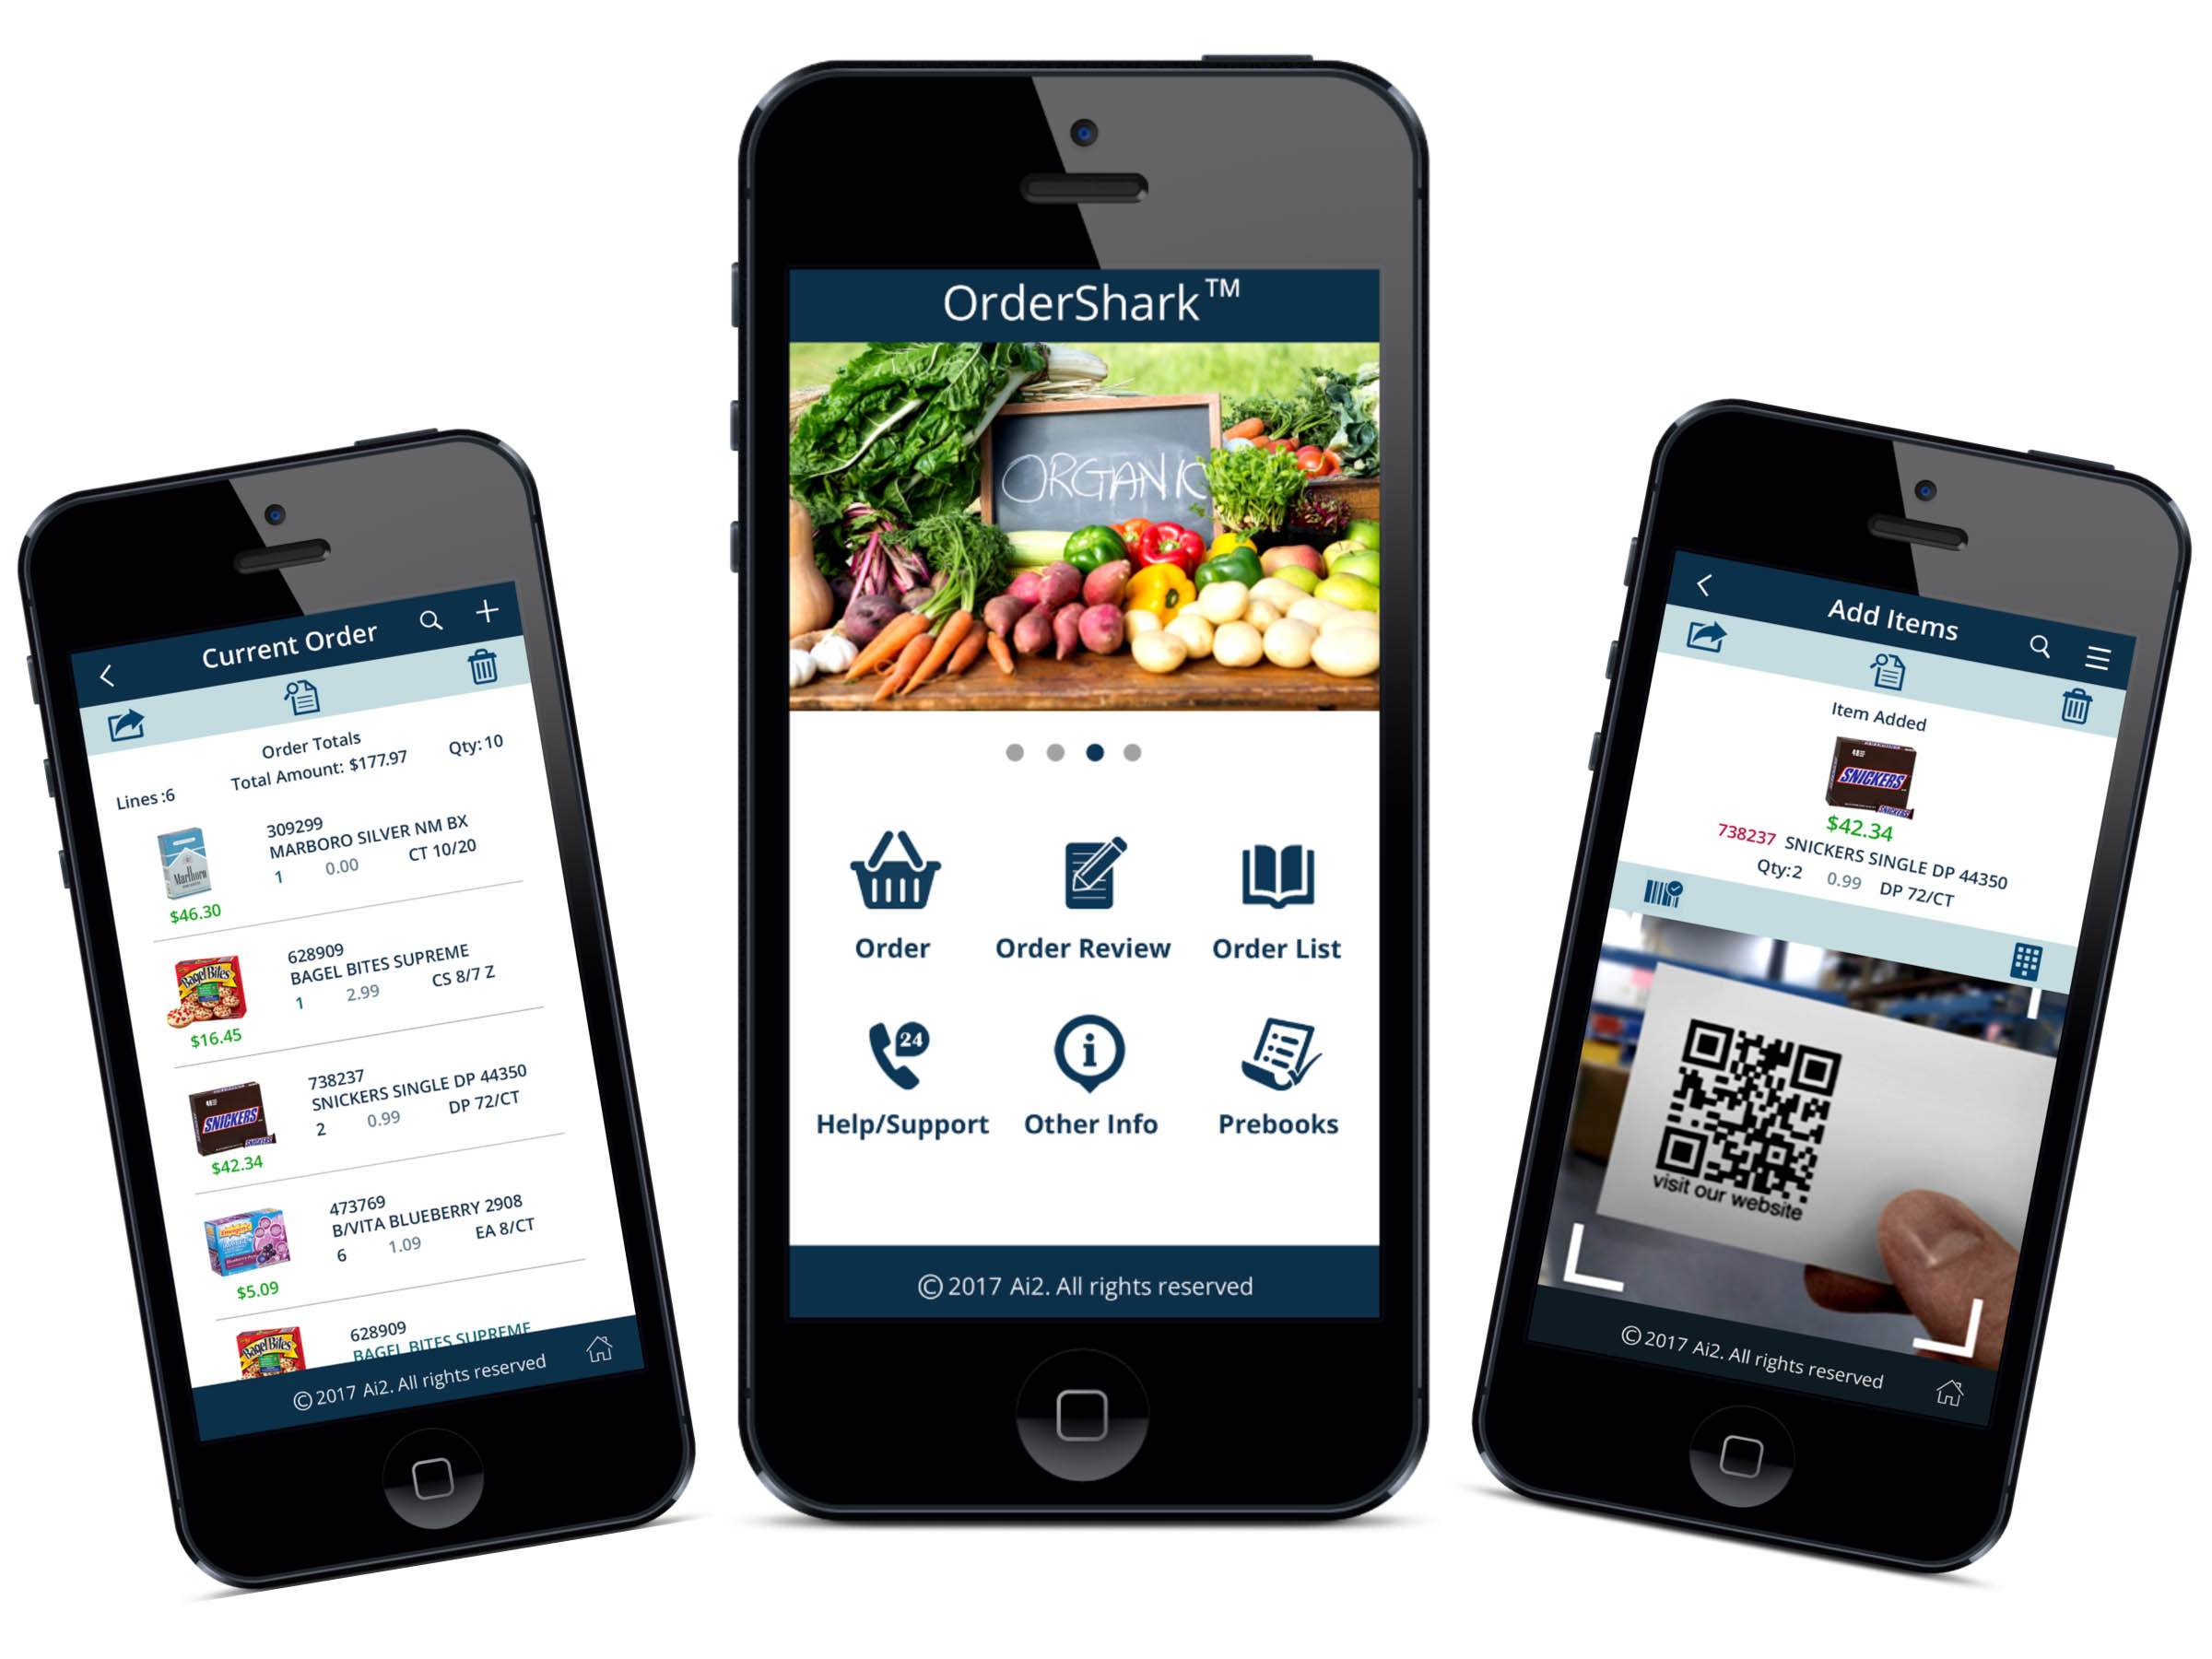 Application for Mobile Ordering